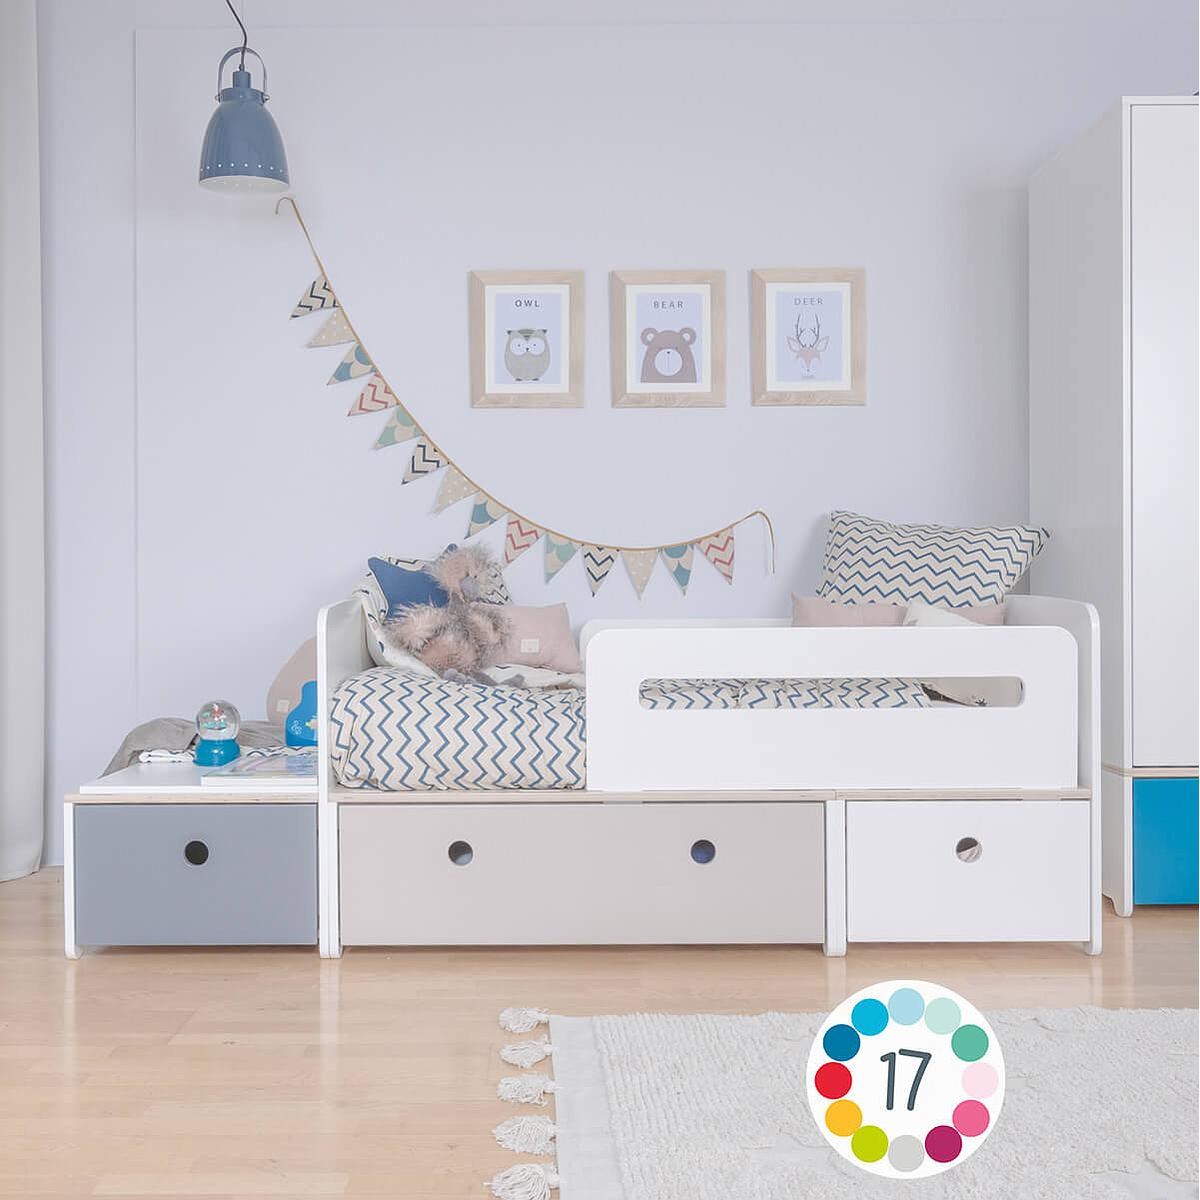 Lit junior évolutif 90x150/200cm COLORFLEX warm grey-mint-paradise blue